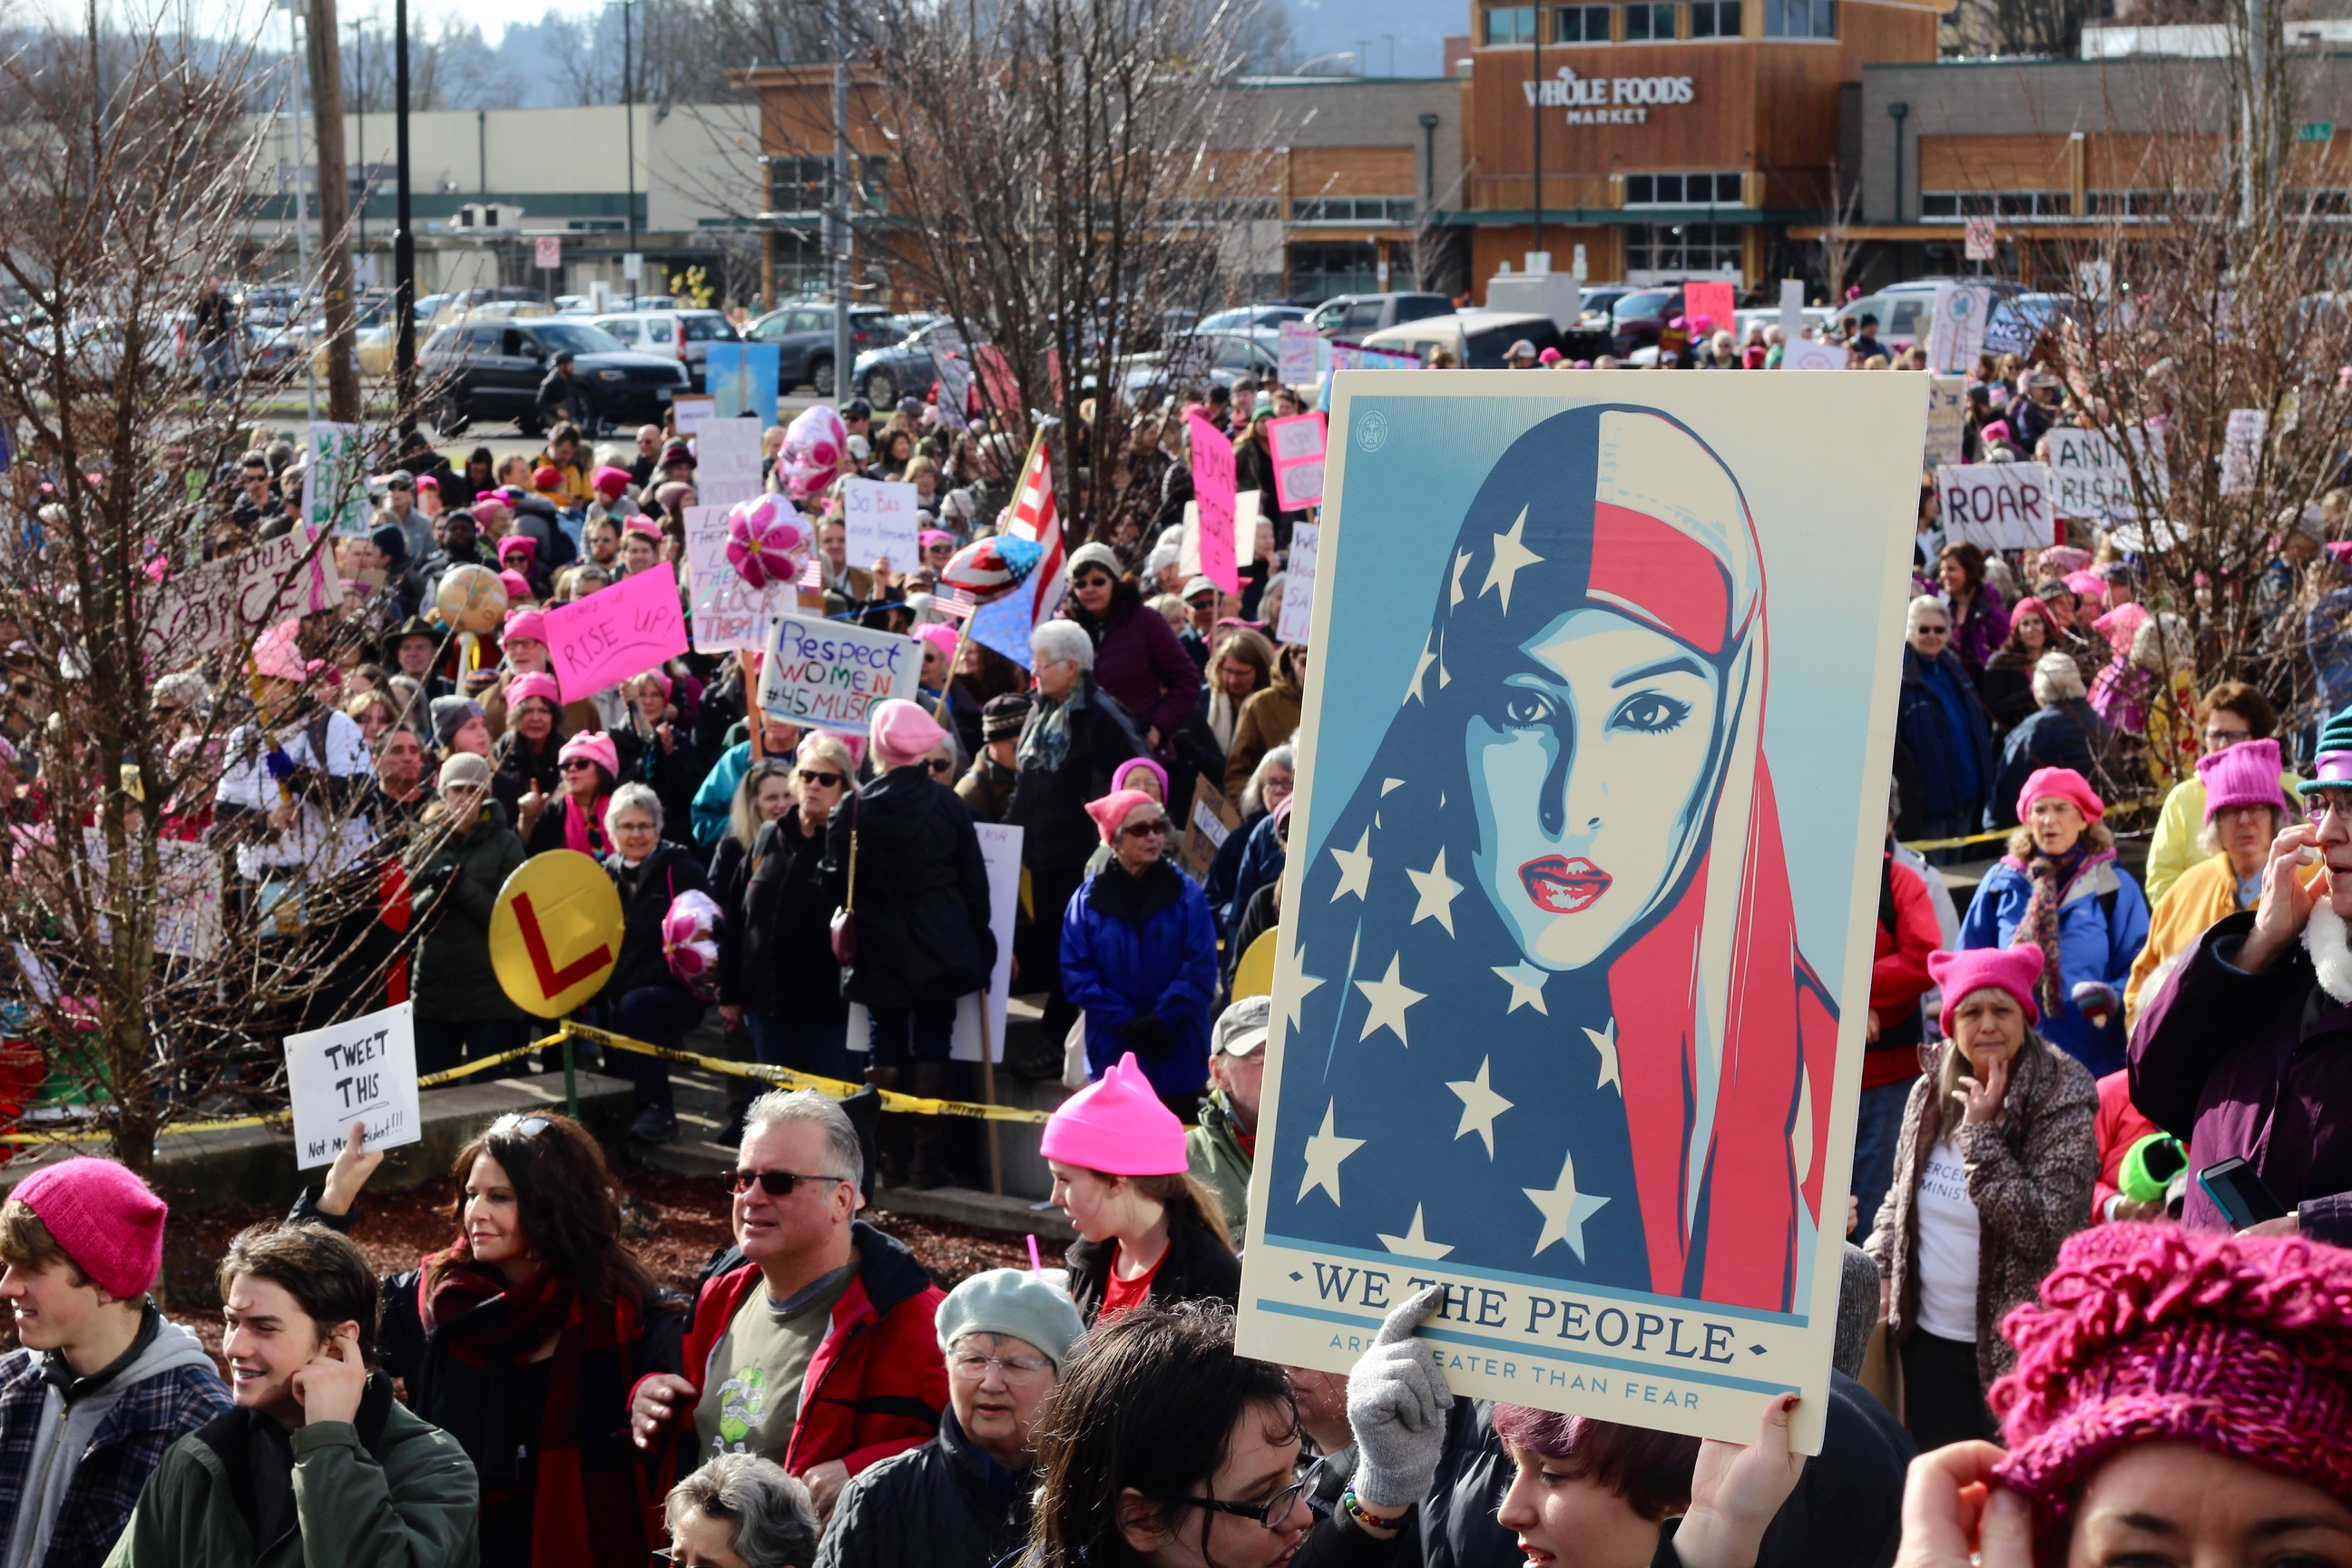 Thousands of peaceful protesters took to the Eugene streets on Saturday for the second annual Eugene Women's March, which takes place on the anniversary of President Trump's inauguration. (Photos courtesy of Zachary Neel)